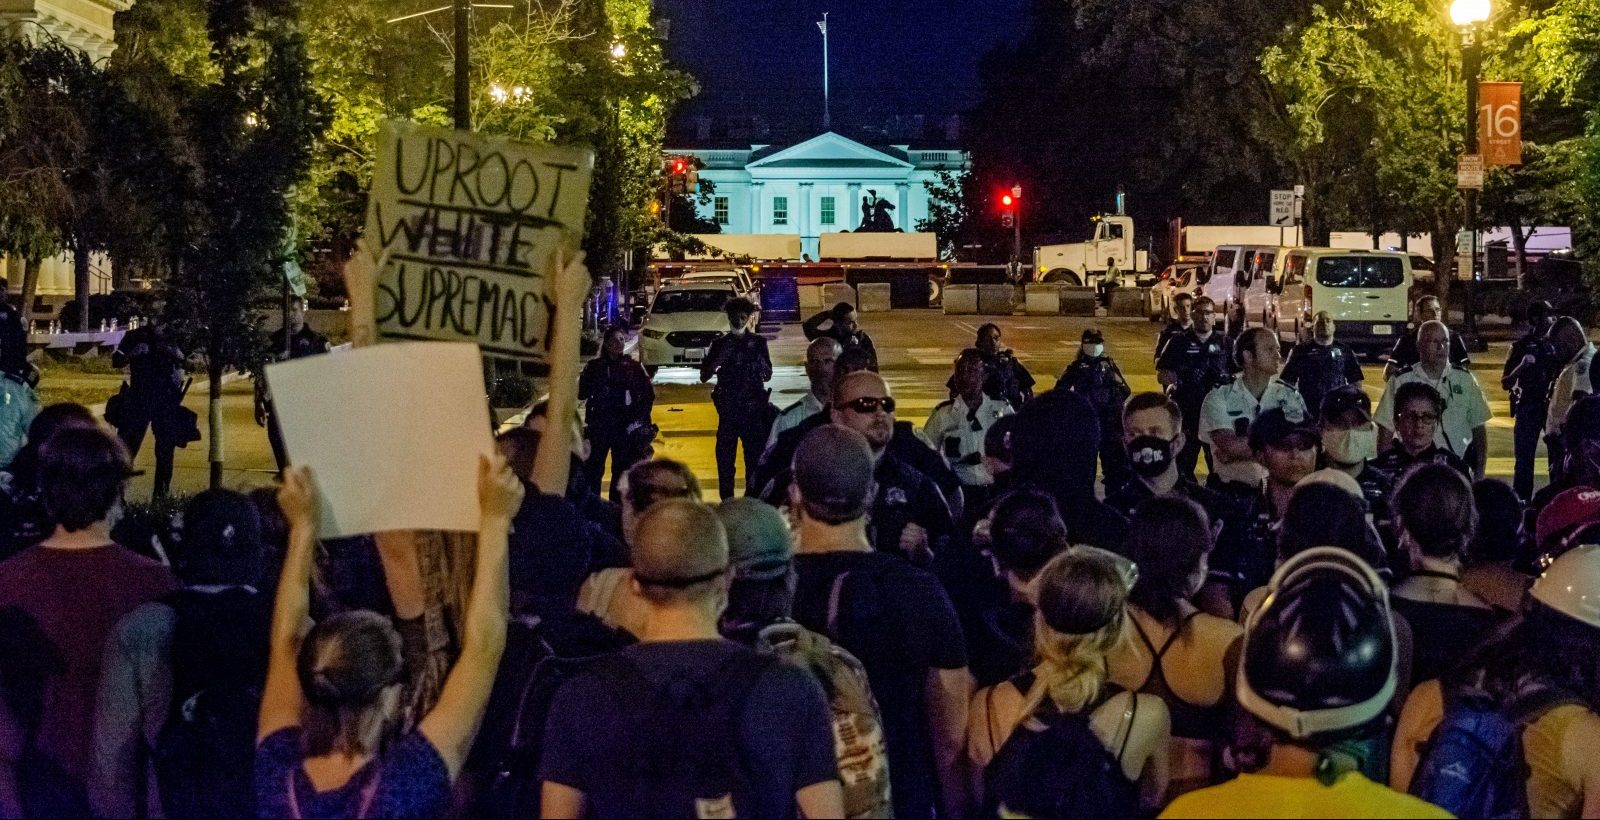 The Rise of White Nationalism in America